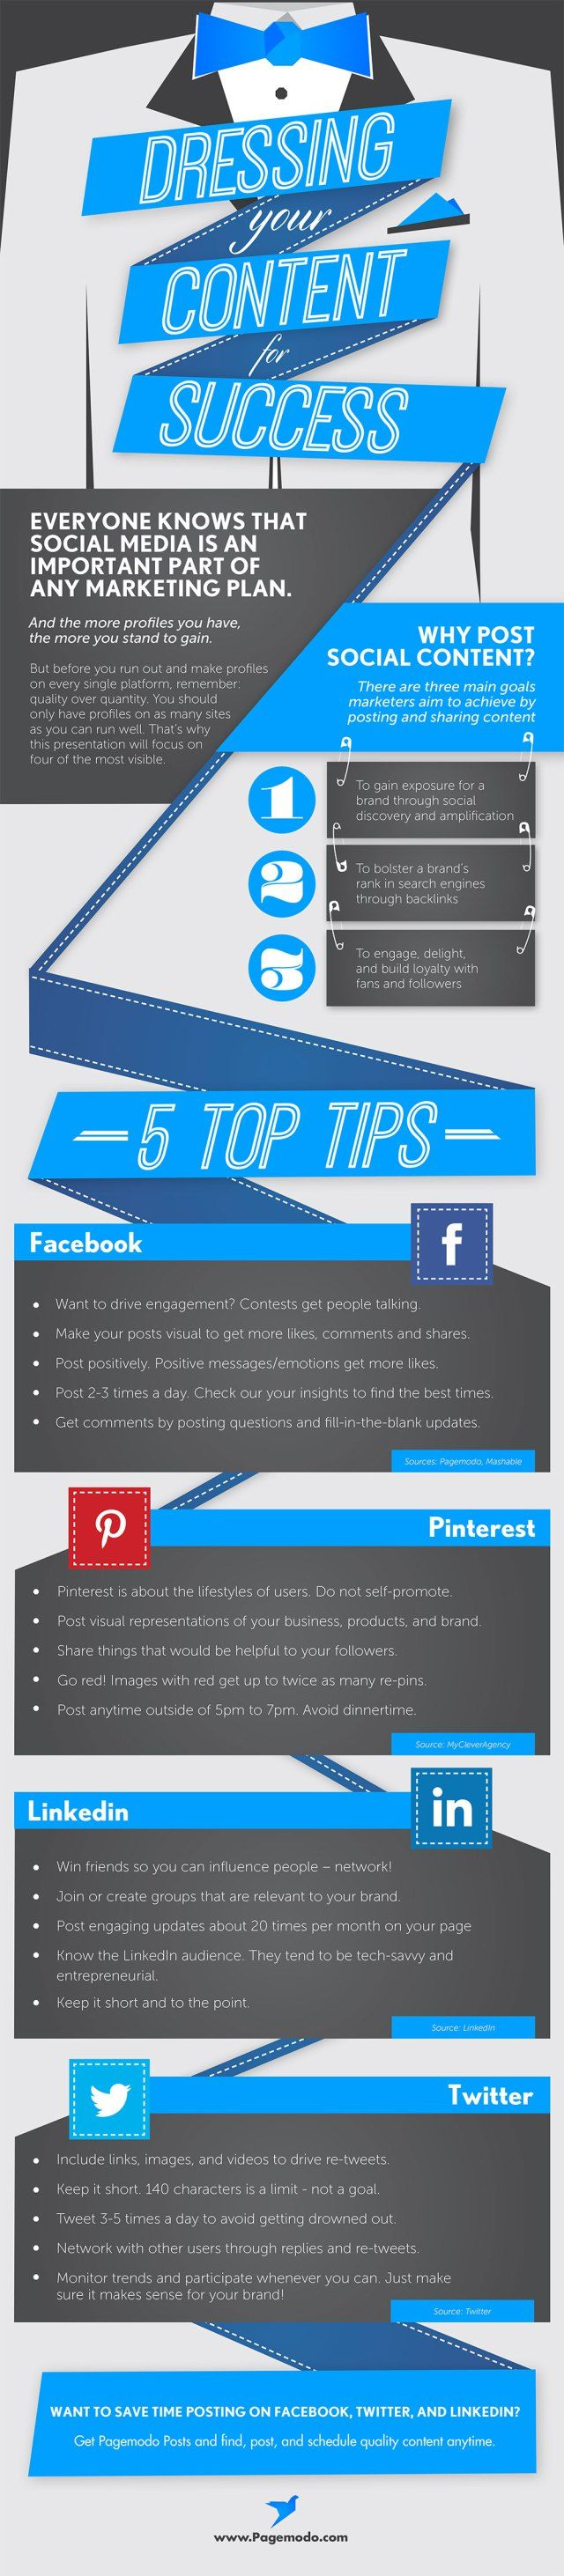 best social media for business images on pinterest social media